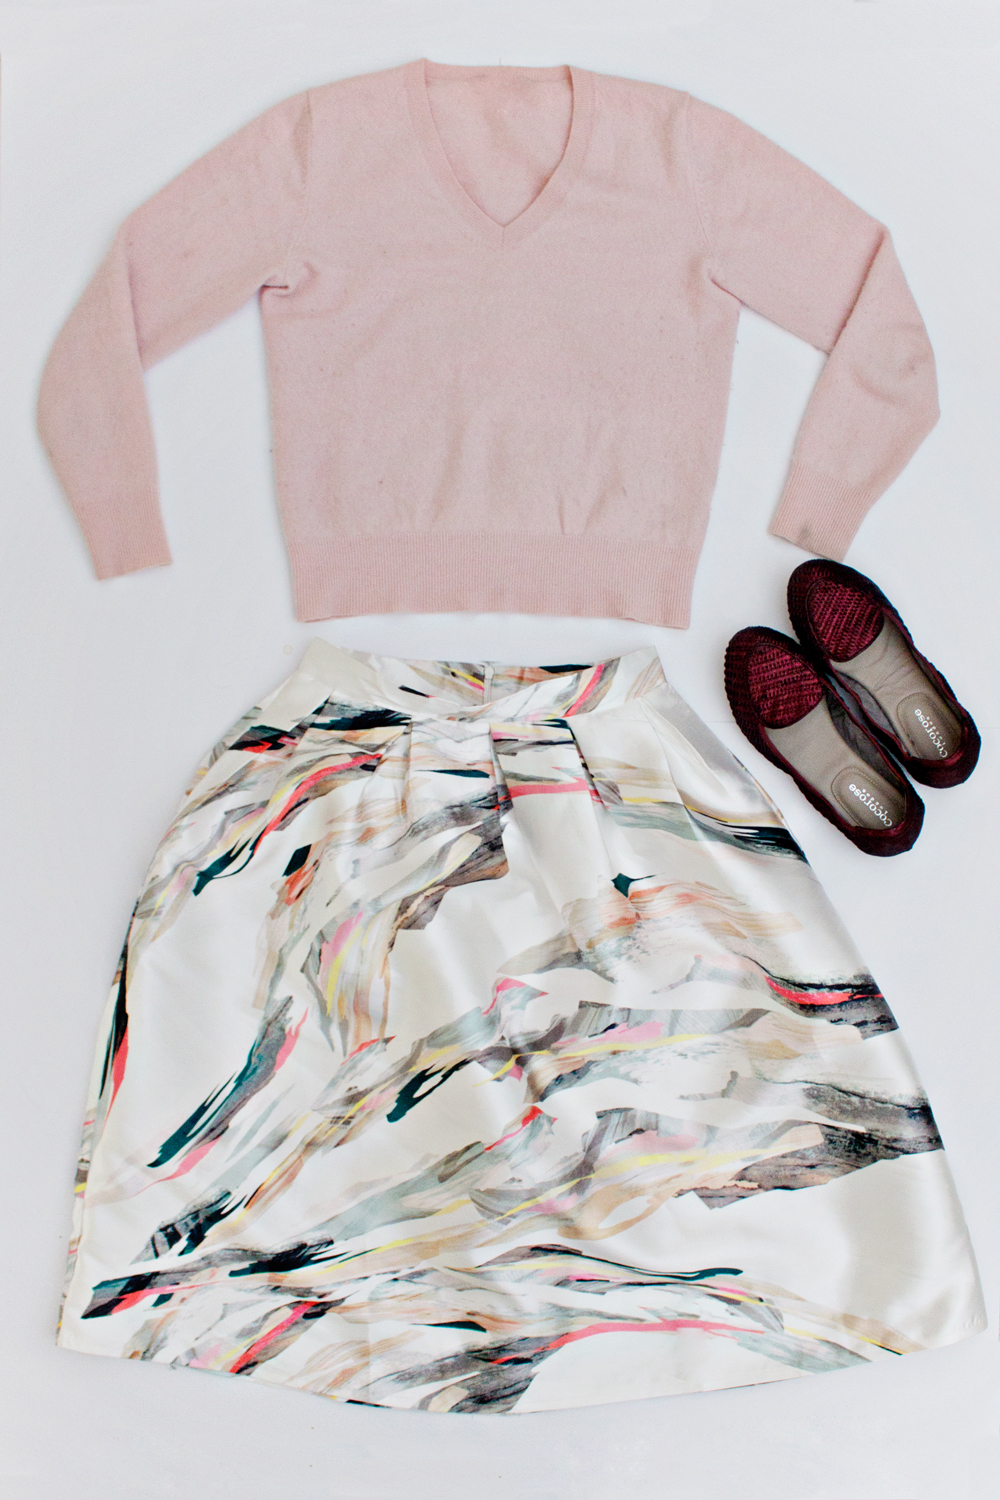 OUTFIT | How to Style a Shirt & Skirt